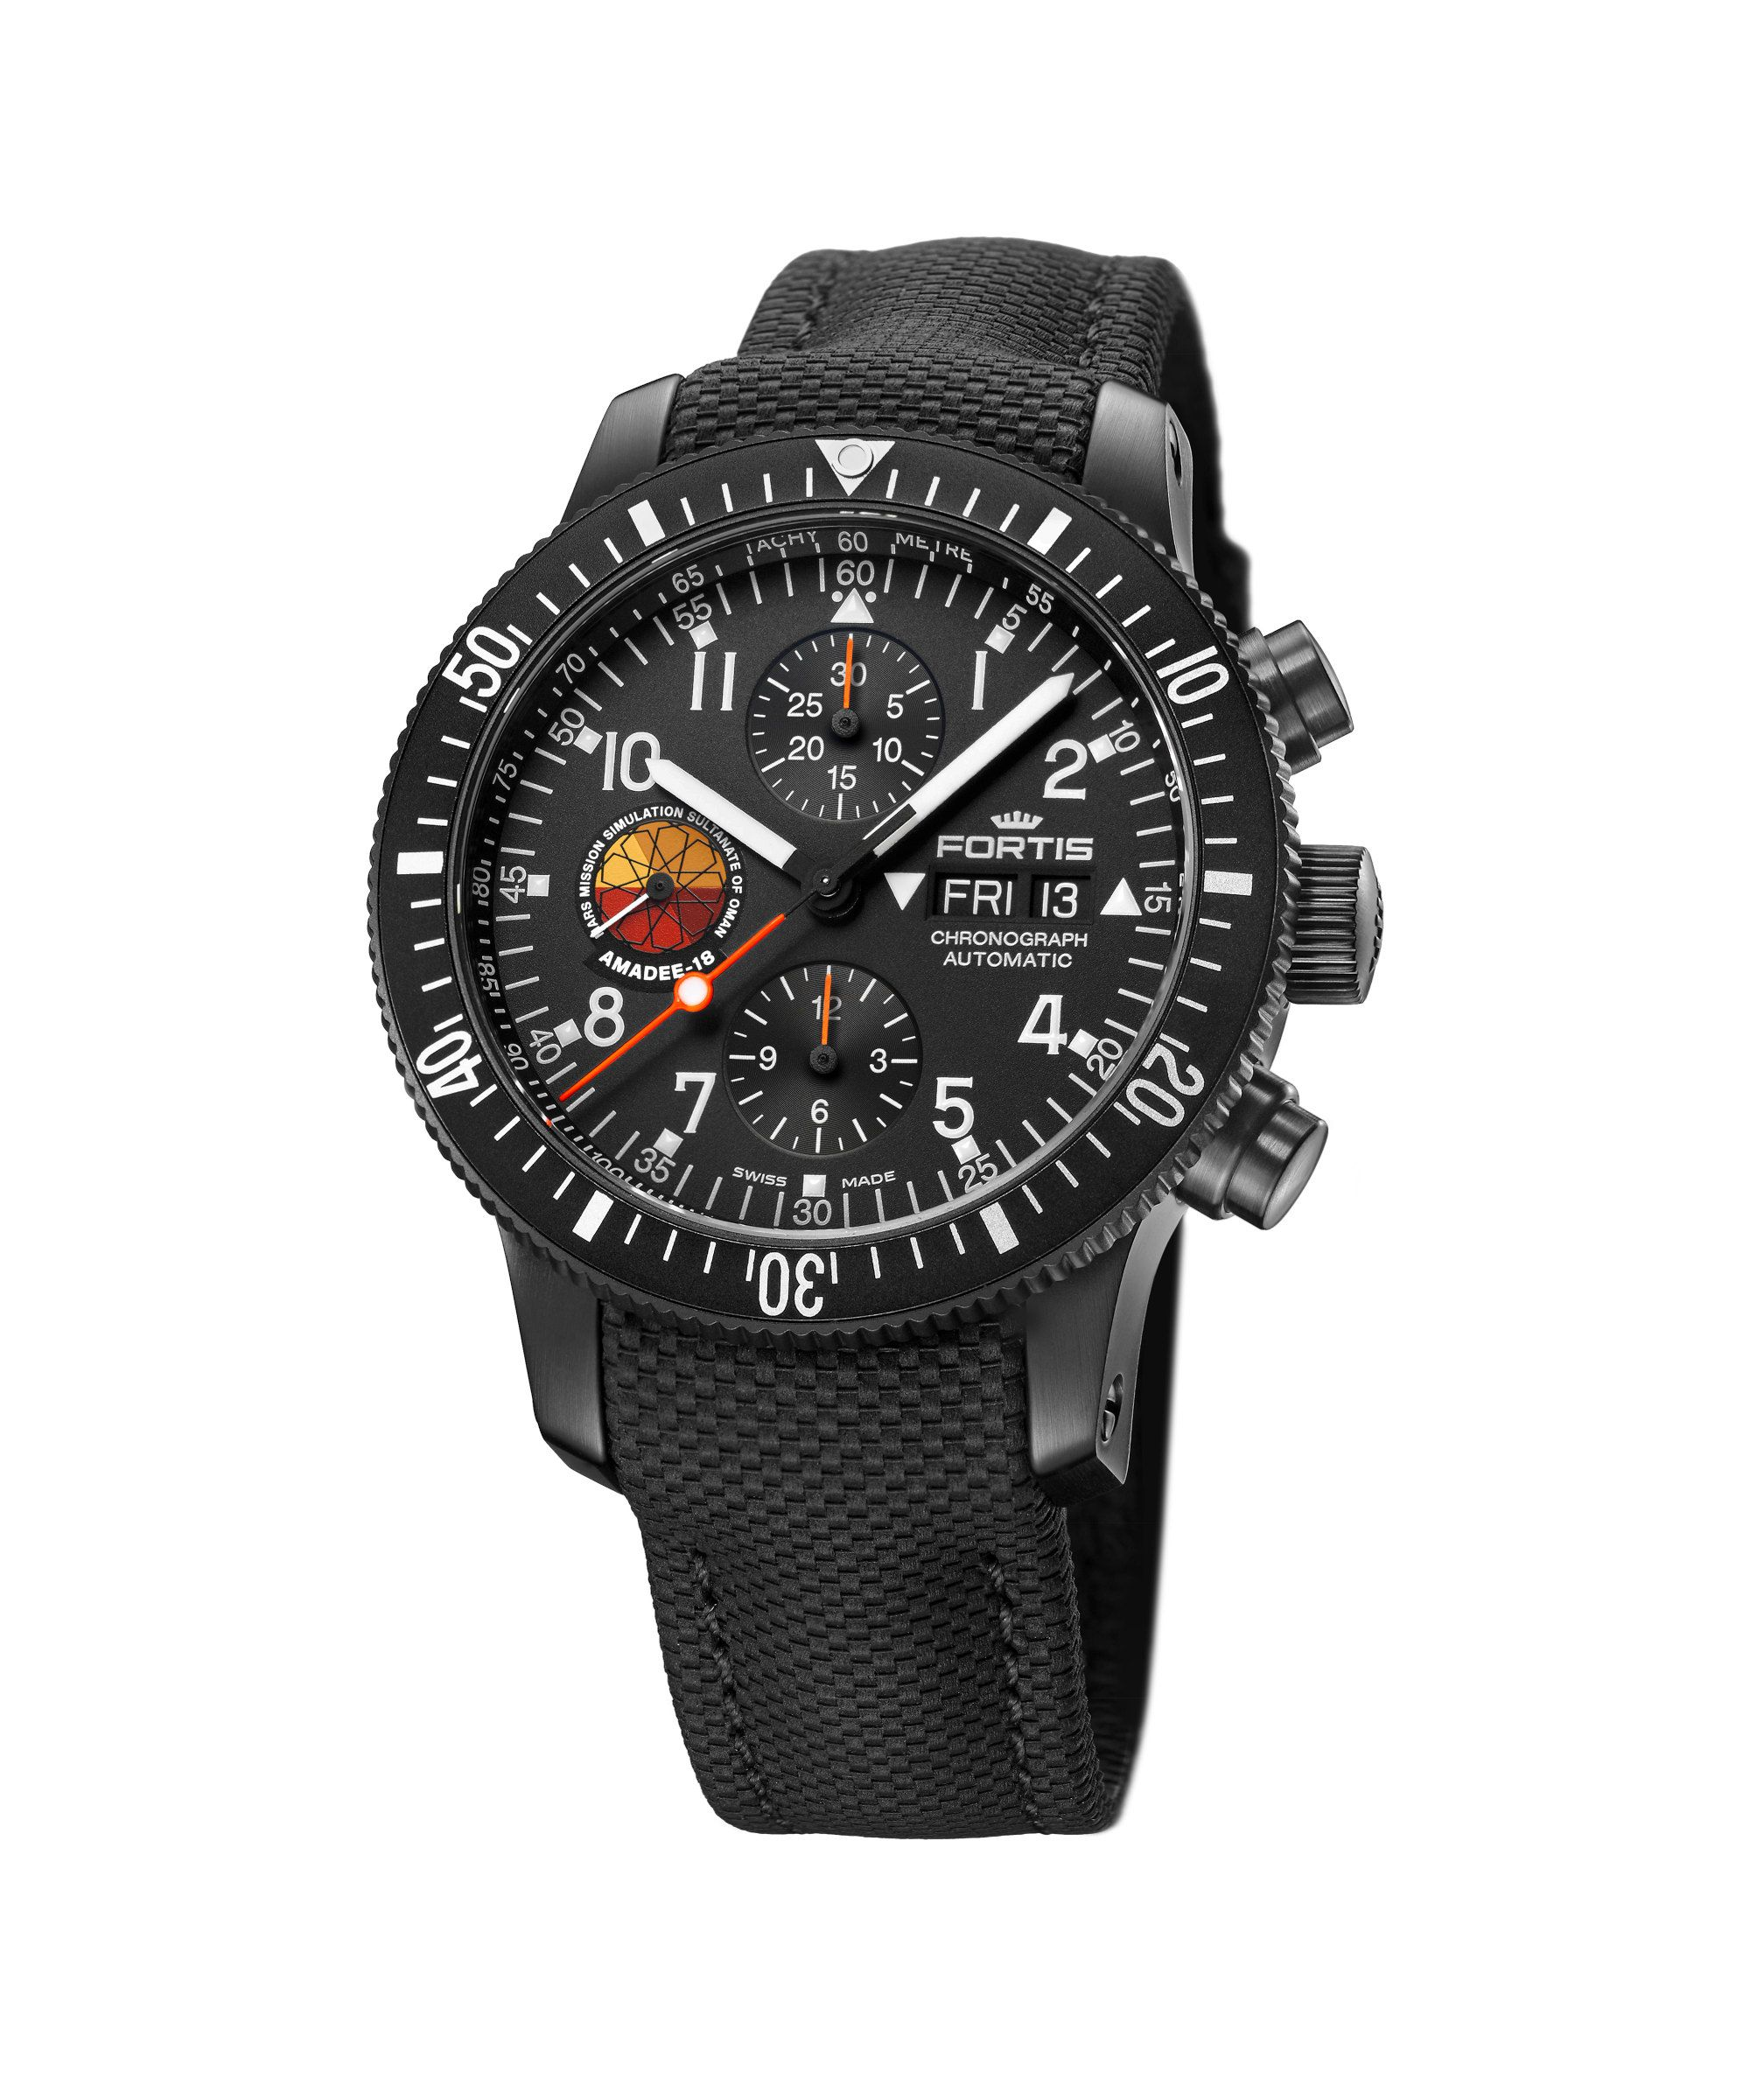 Fortis Official Cosmonauts Amadee-18 -  1 638.18.91